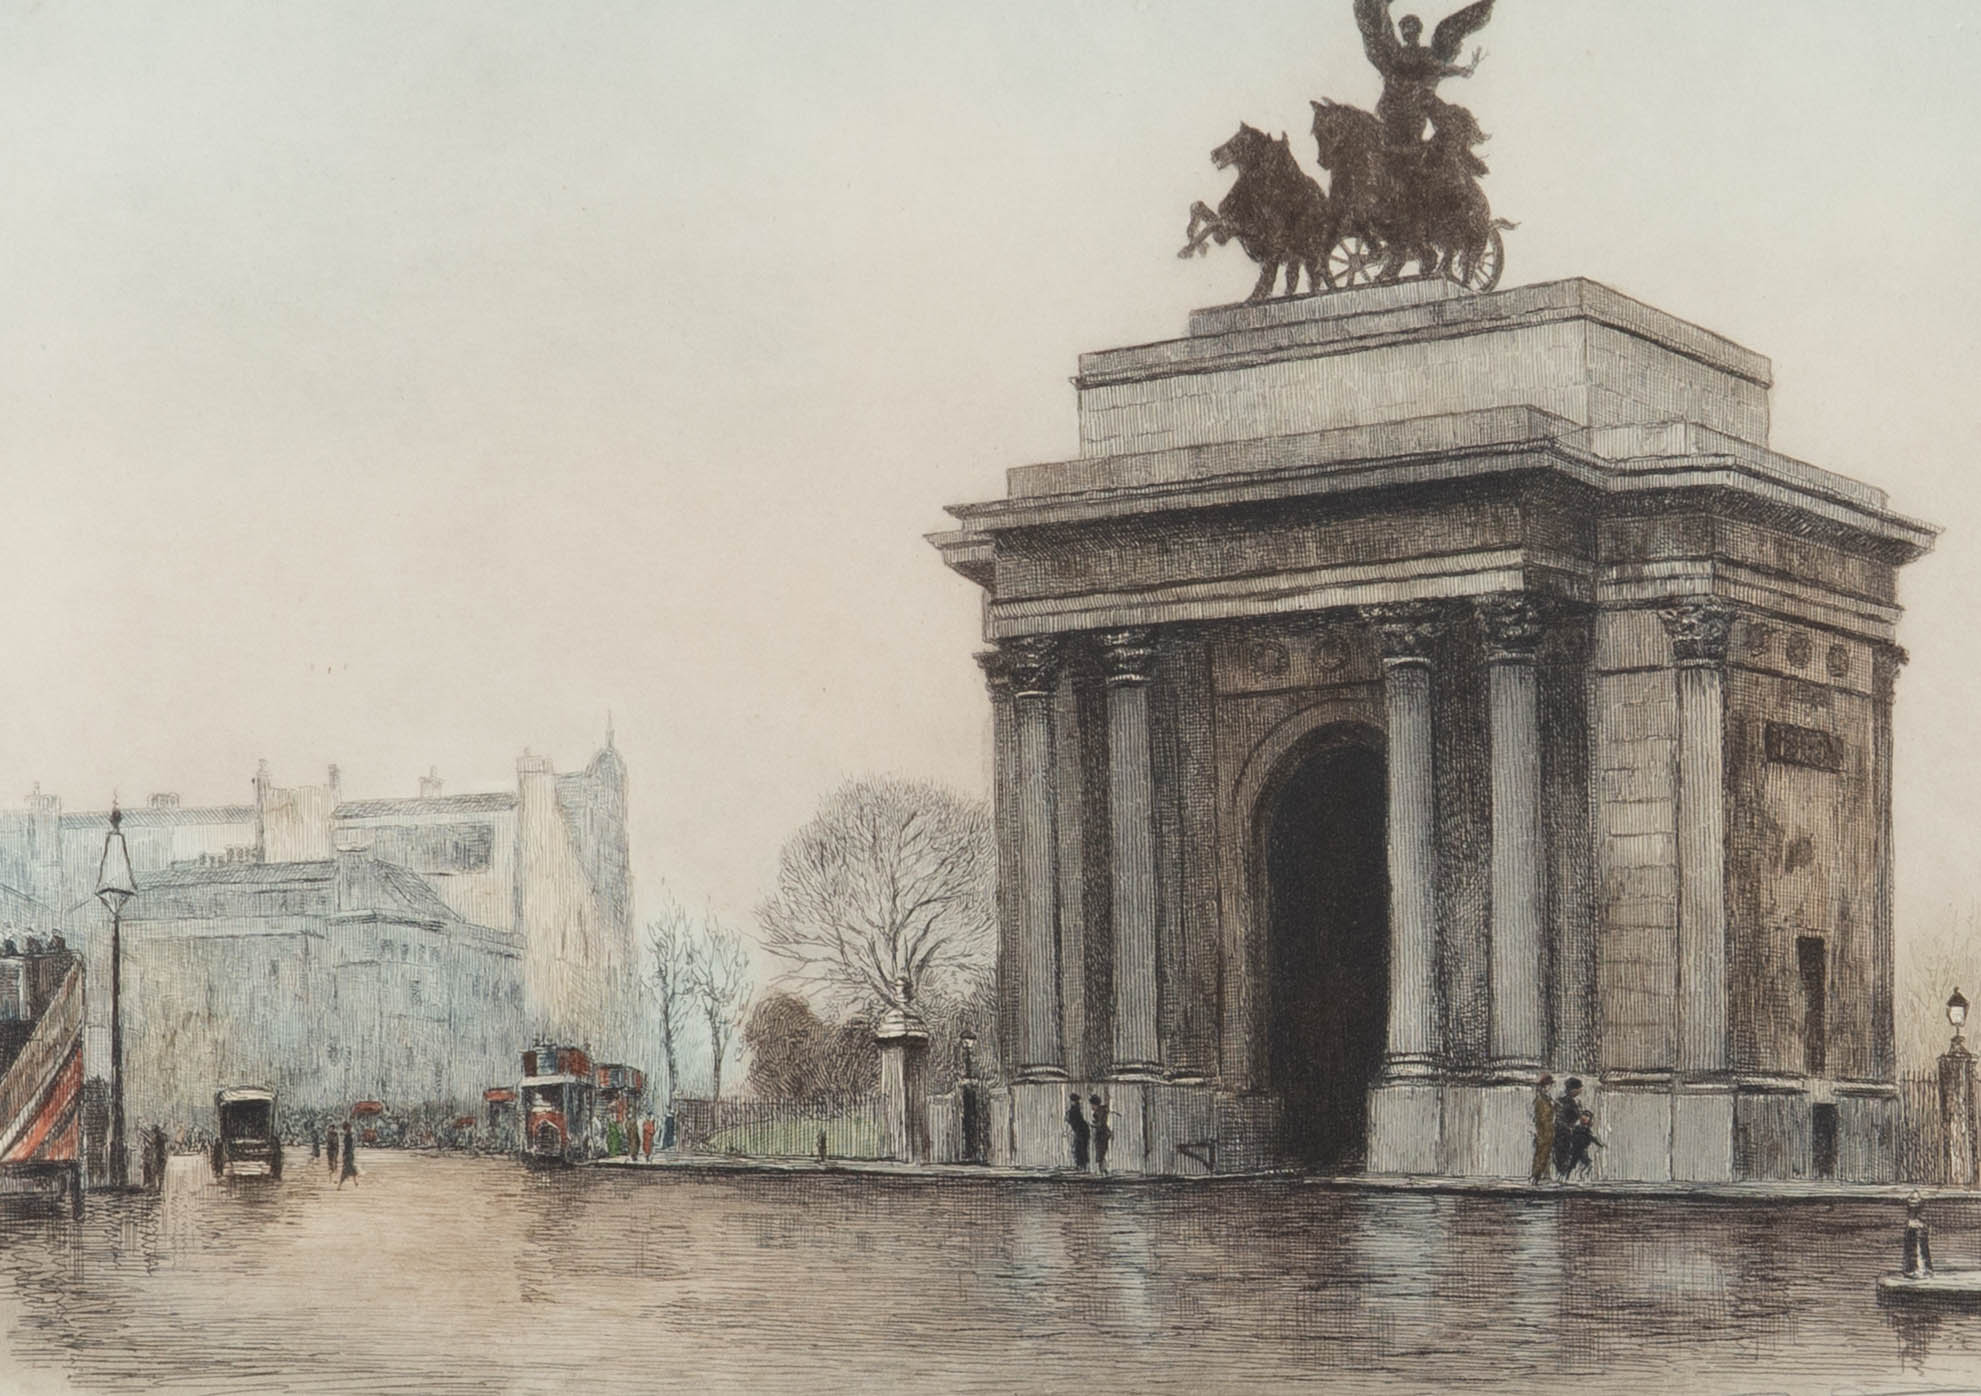 Eugene Tilly (1870-1937) after Edward King - Etching, Constitution Hill, London